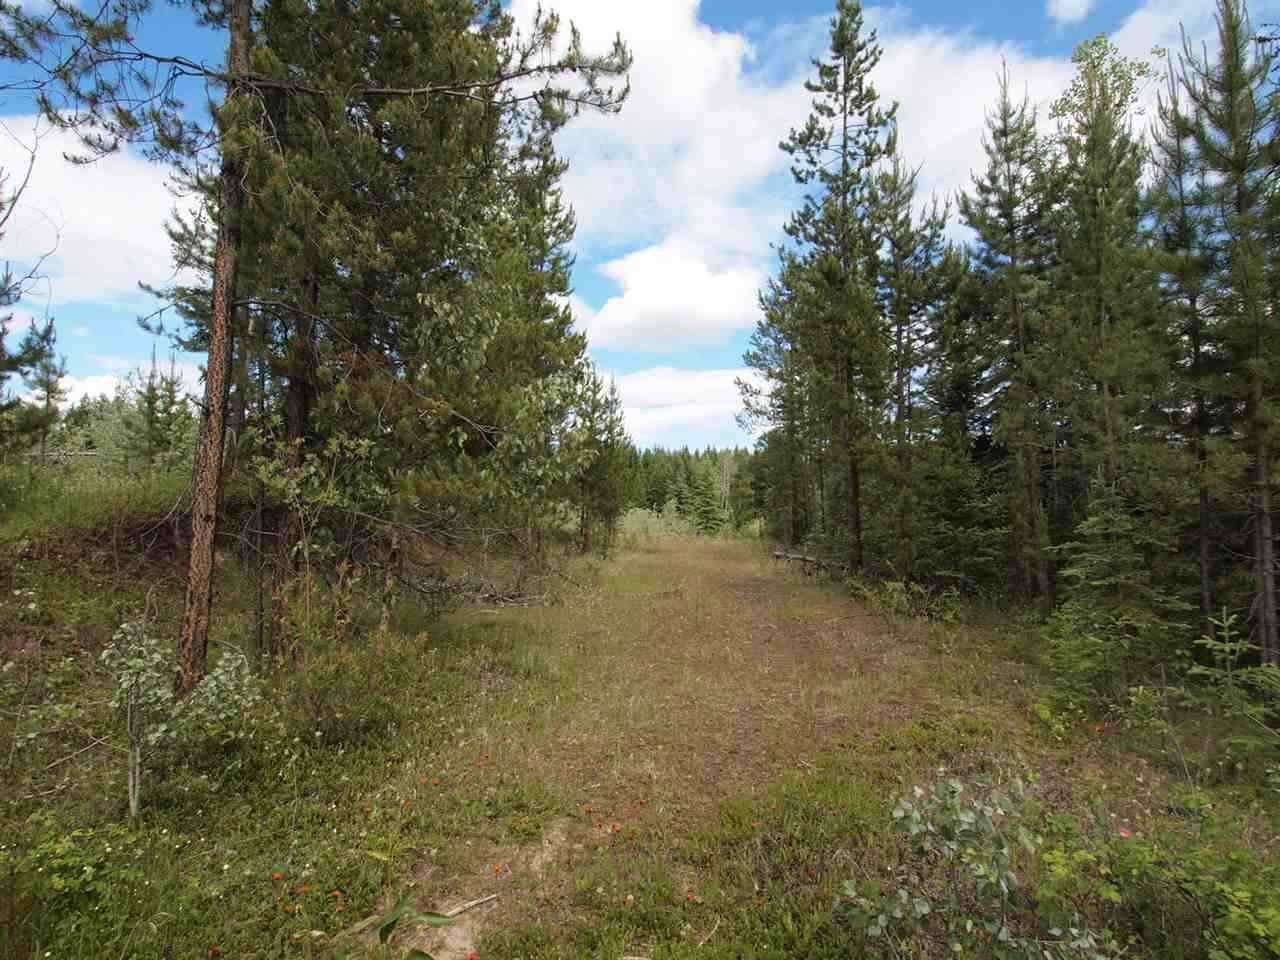 Main Photo: 4573 BAKKEN Road: Forest Grove Land for sale (100 Mile House (Zone 10))  : MLS®# R2377308